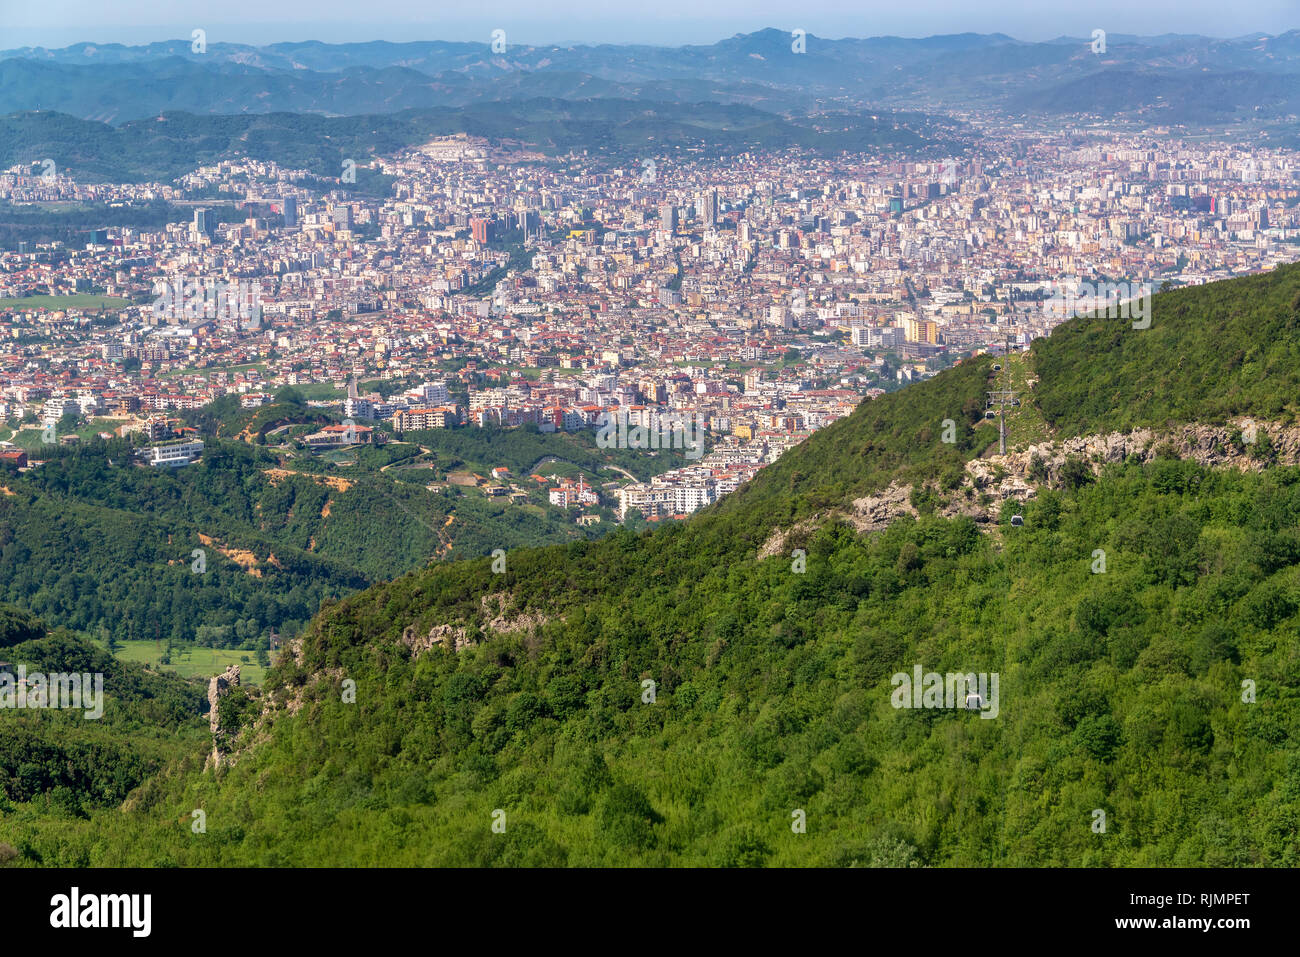 Cityscape view of Tirana, Albania as seen from the Dajti Express - Stock Image